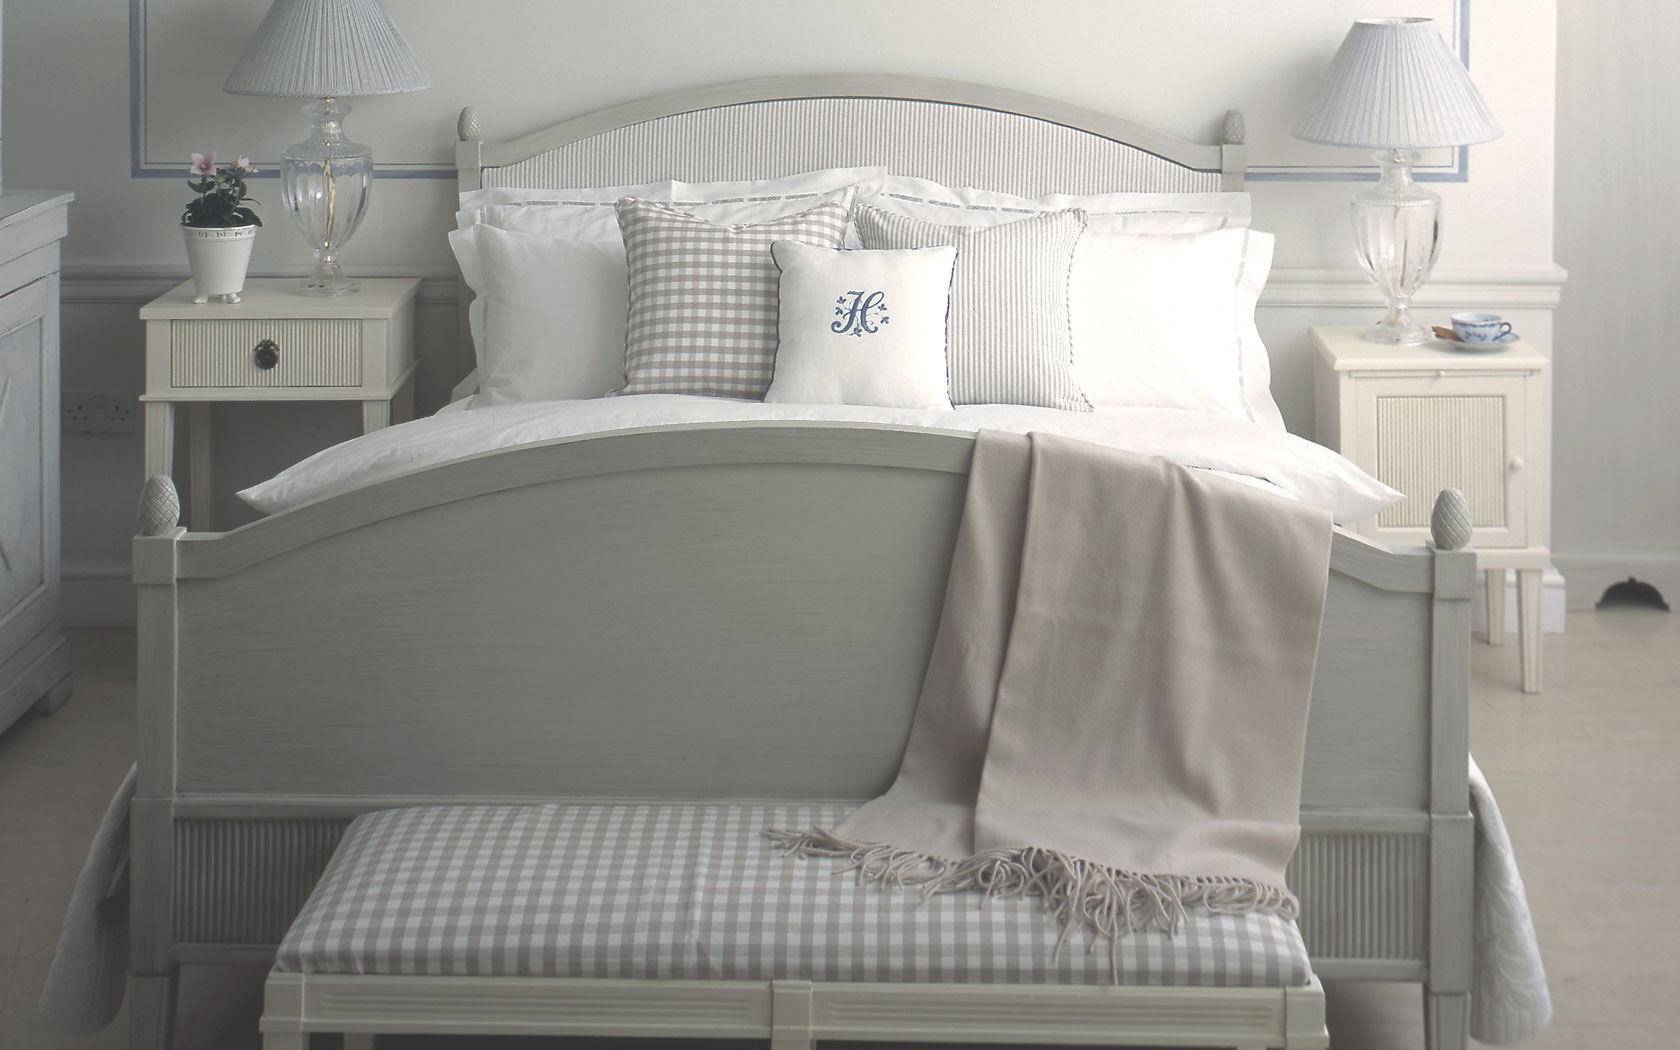 http://features.nordicstyle.com/wp-content/uploads/karlsholm_bed.jpg